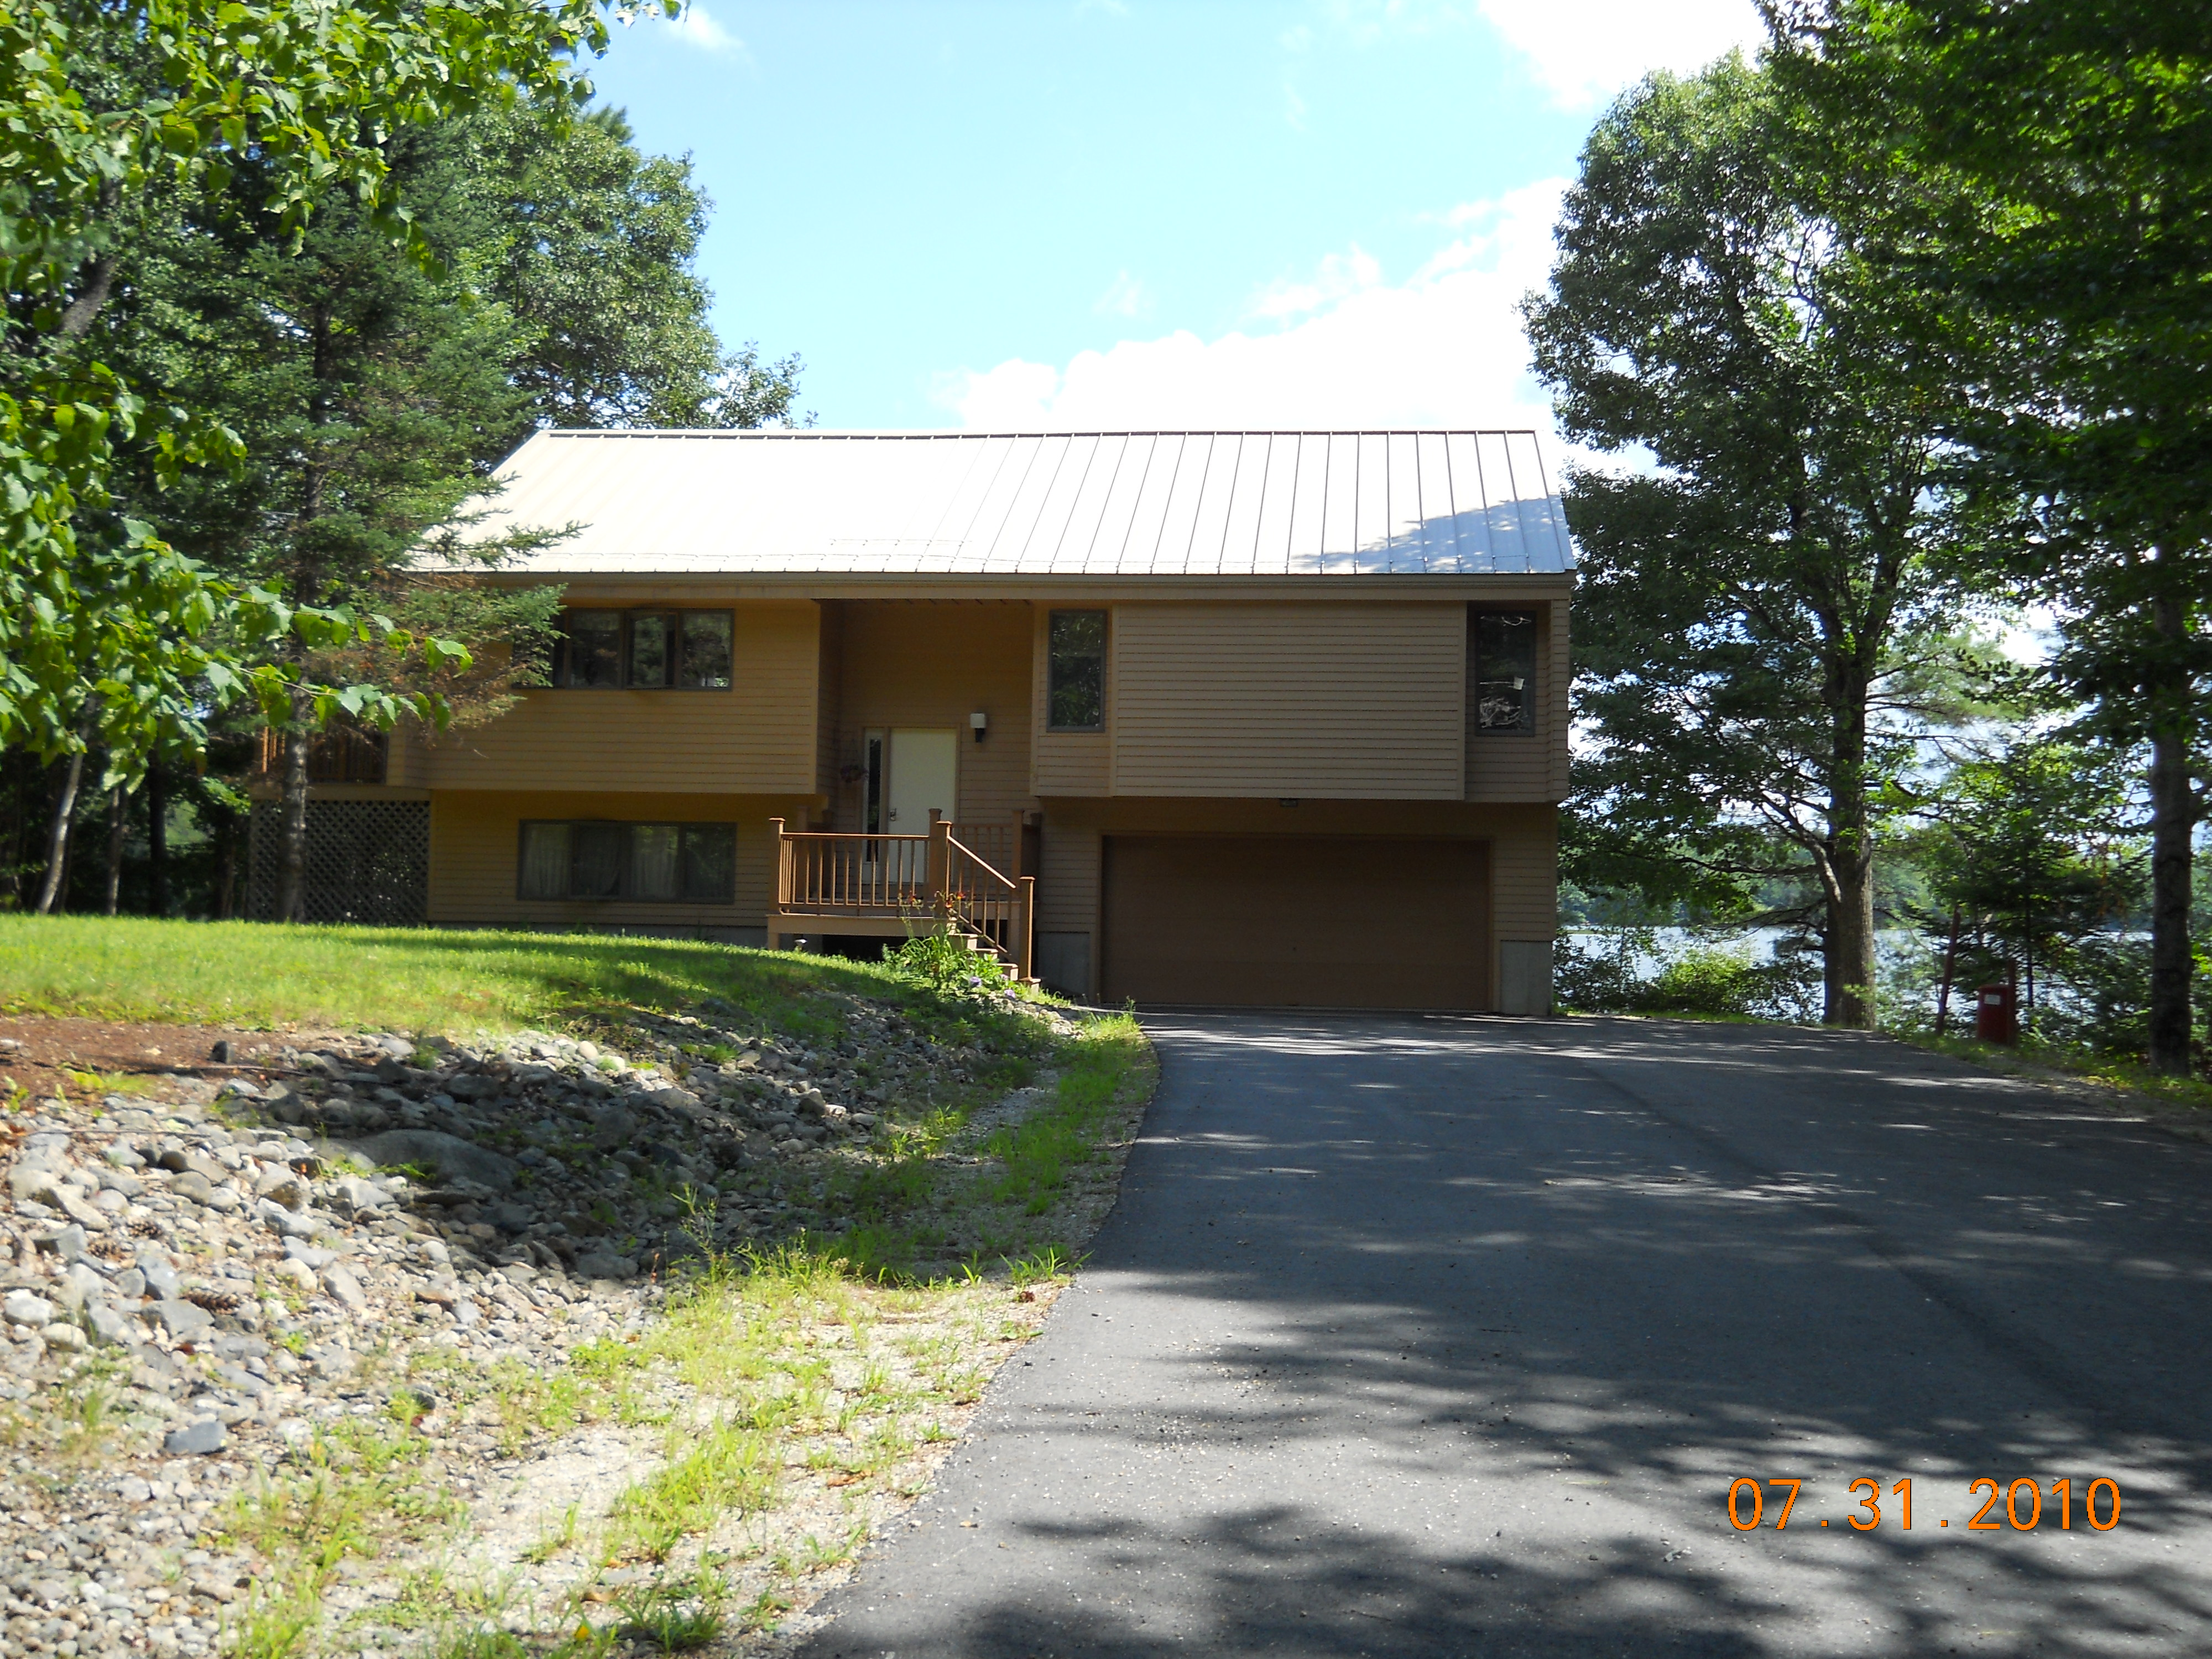 Residential House #1- Conway, NH